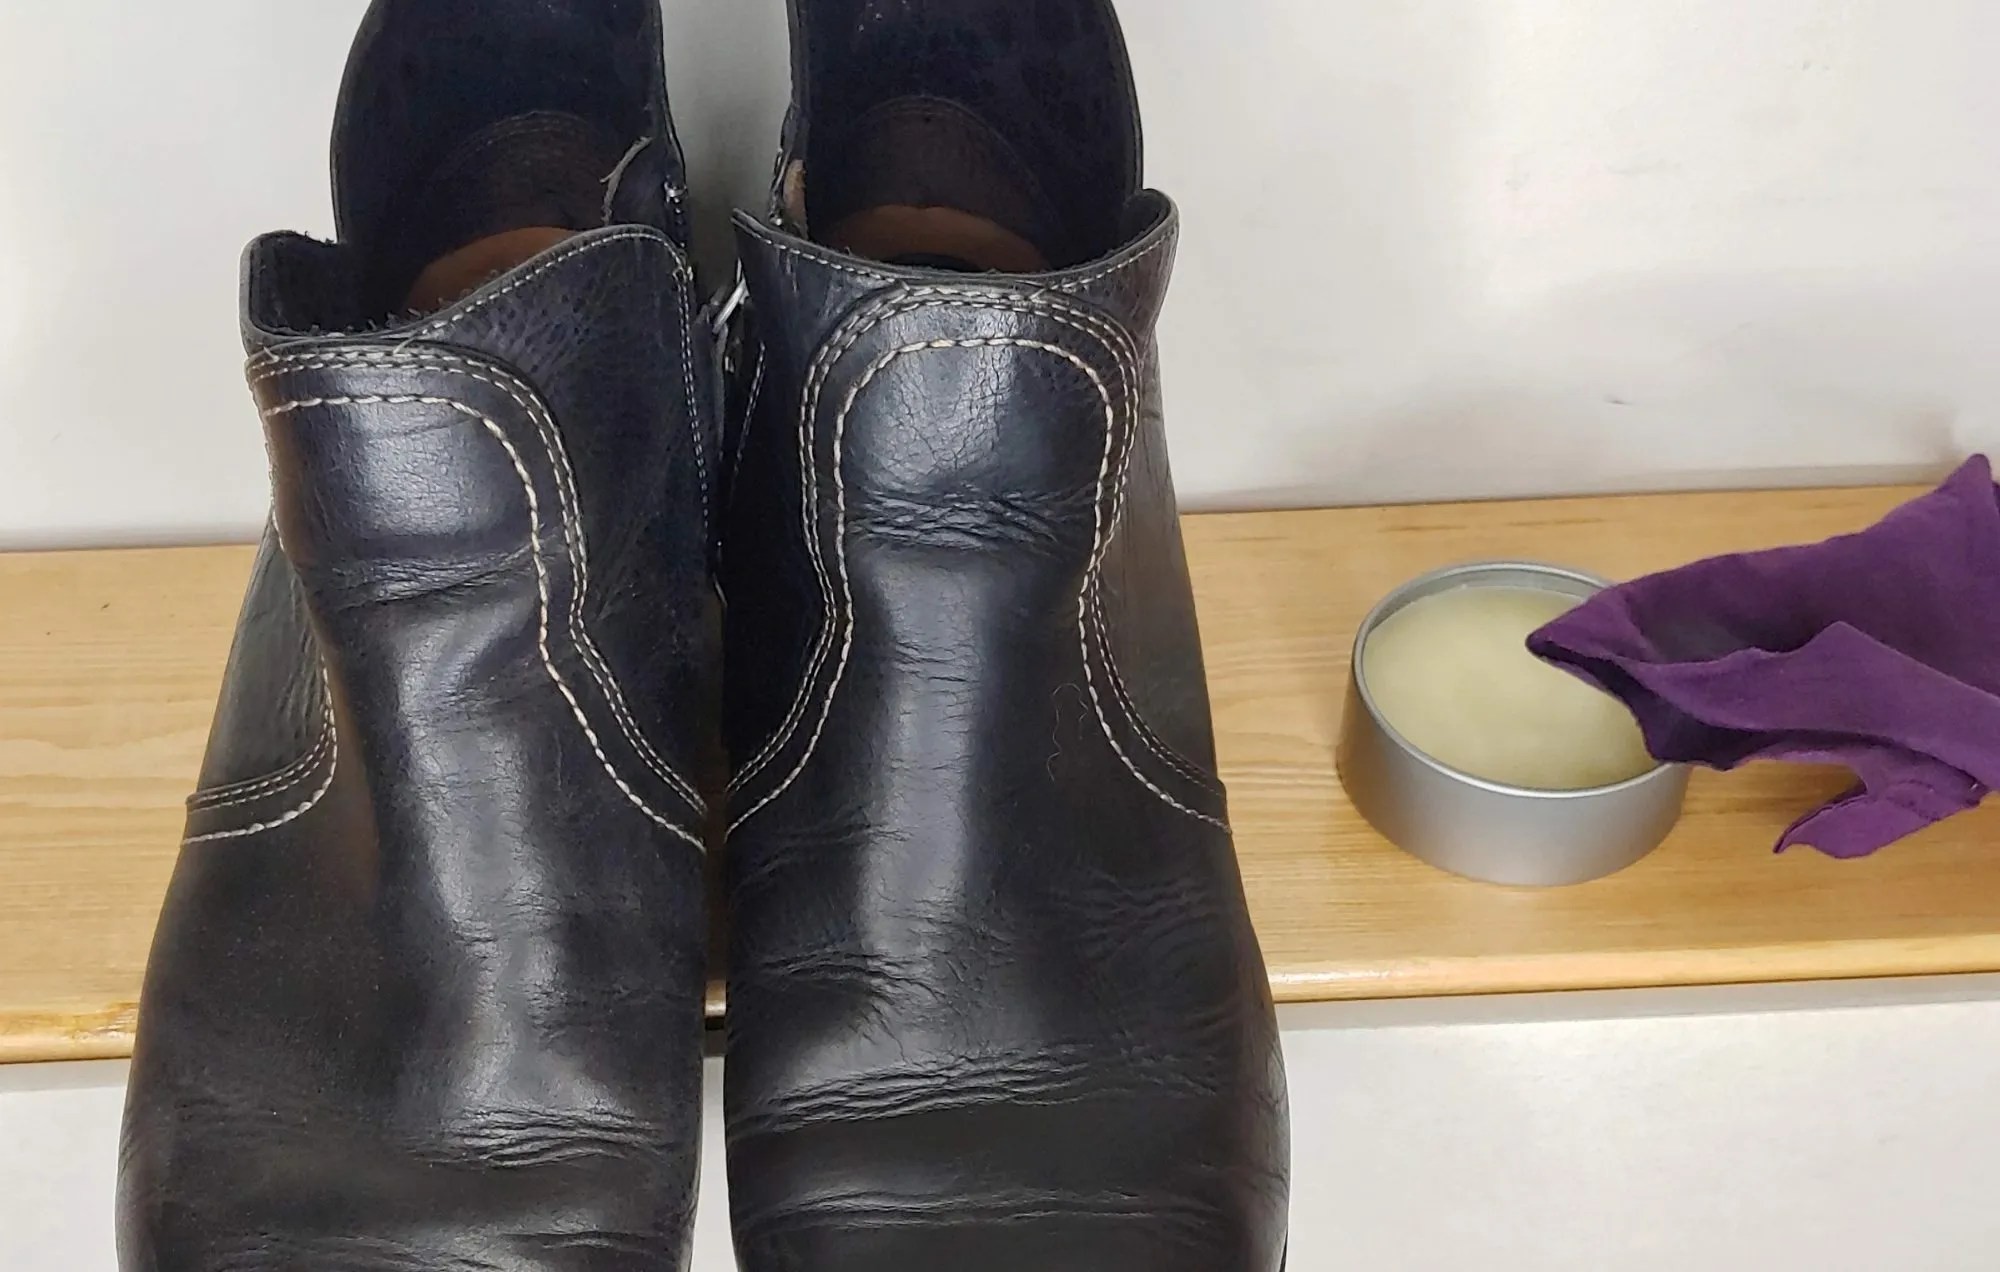 How to Make Beeswax Leather Conditioner & Shoe Polish